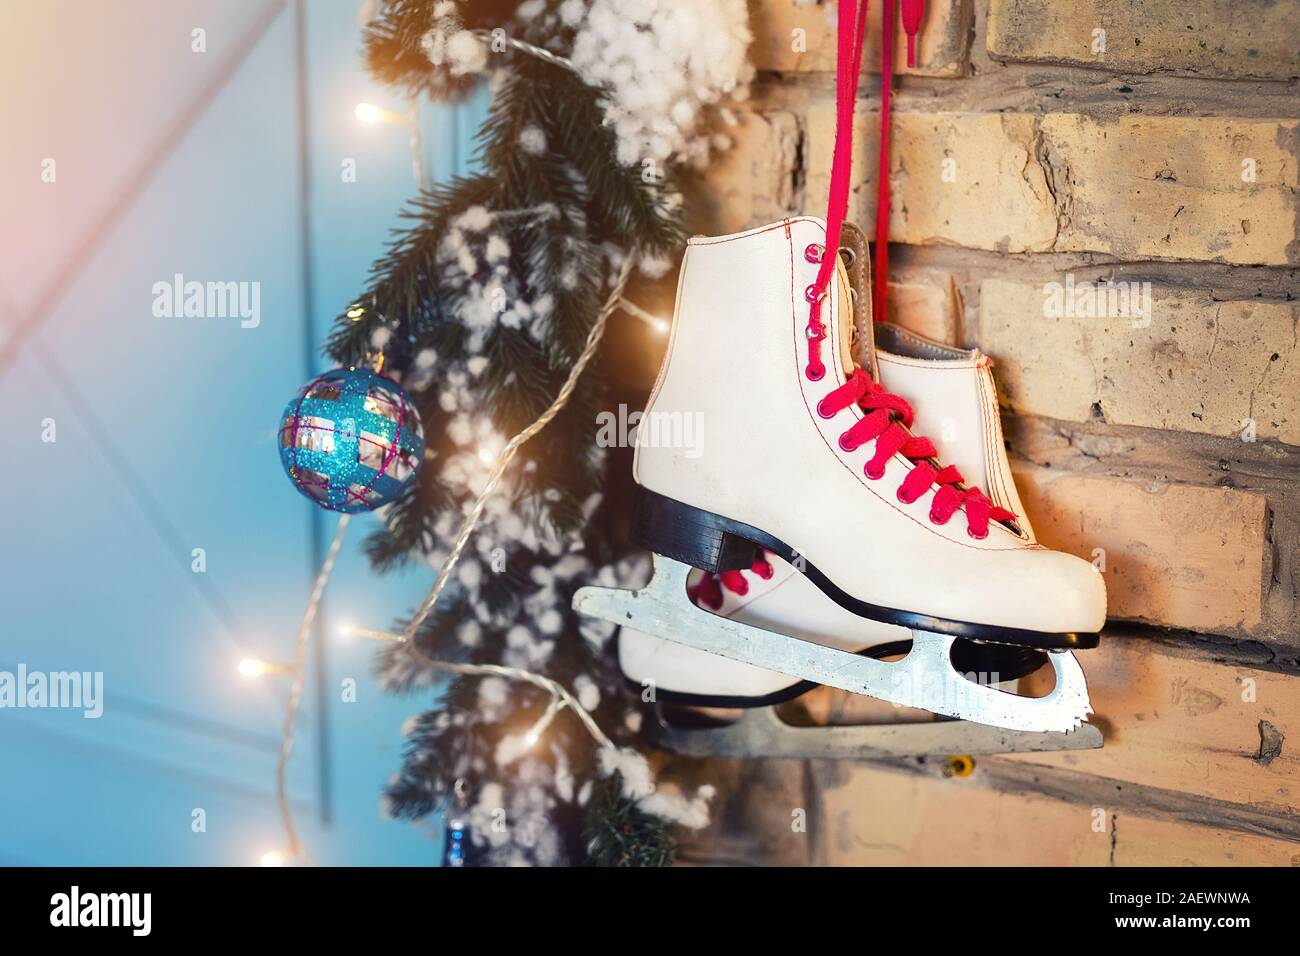 What Can I Use To Attach Christmas Lights To Brick pair of white vintage leather skates with red laces hanging